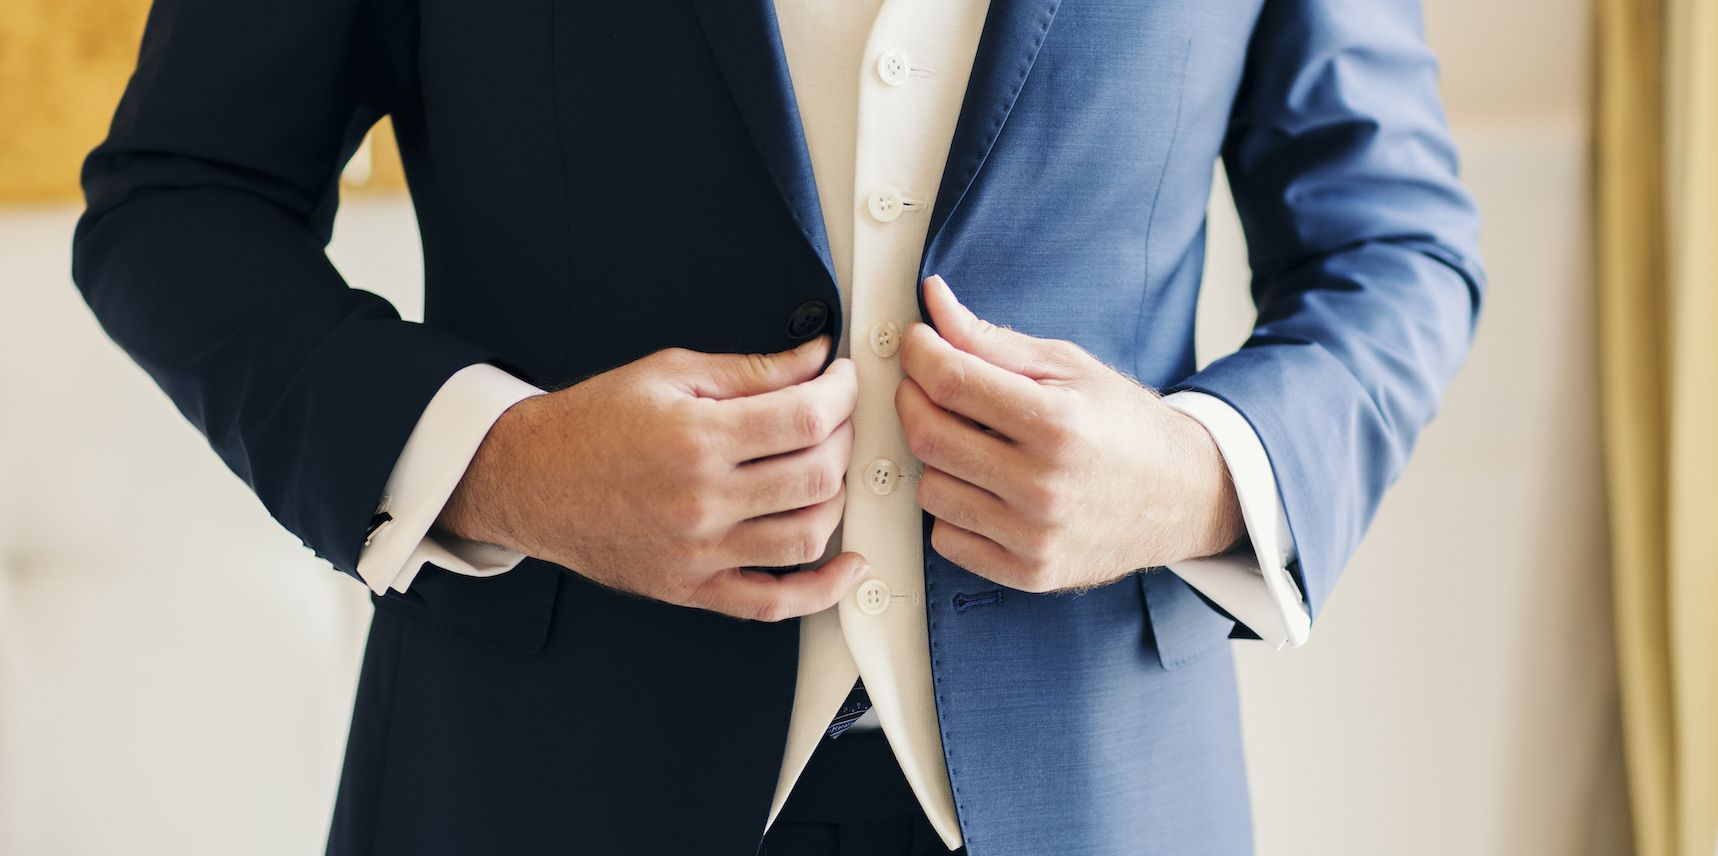 The Reddit Community for Male Fashion Advice Is Full of Helpful Style Hacks